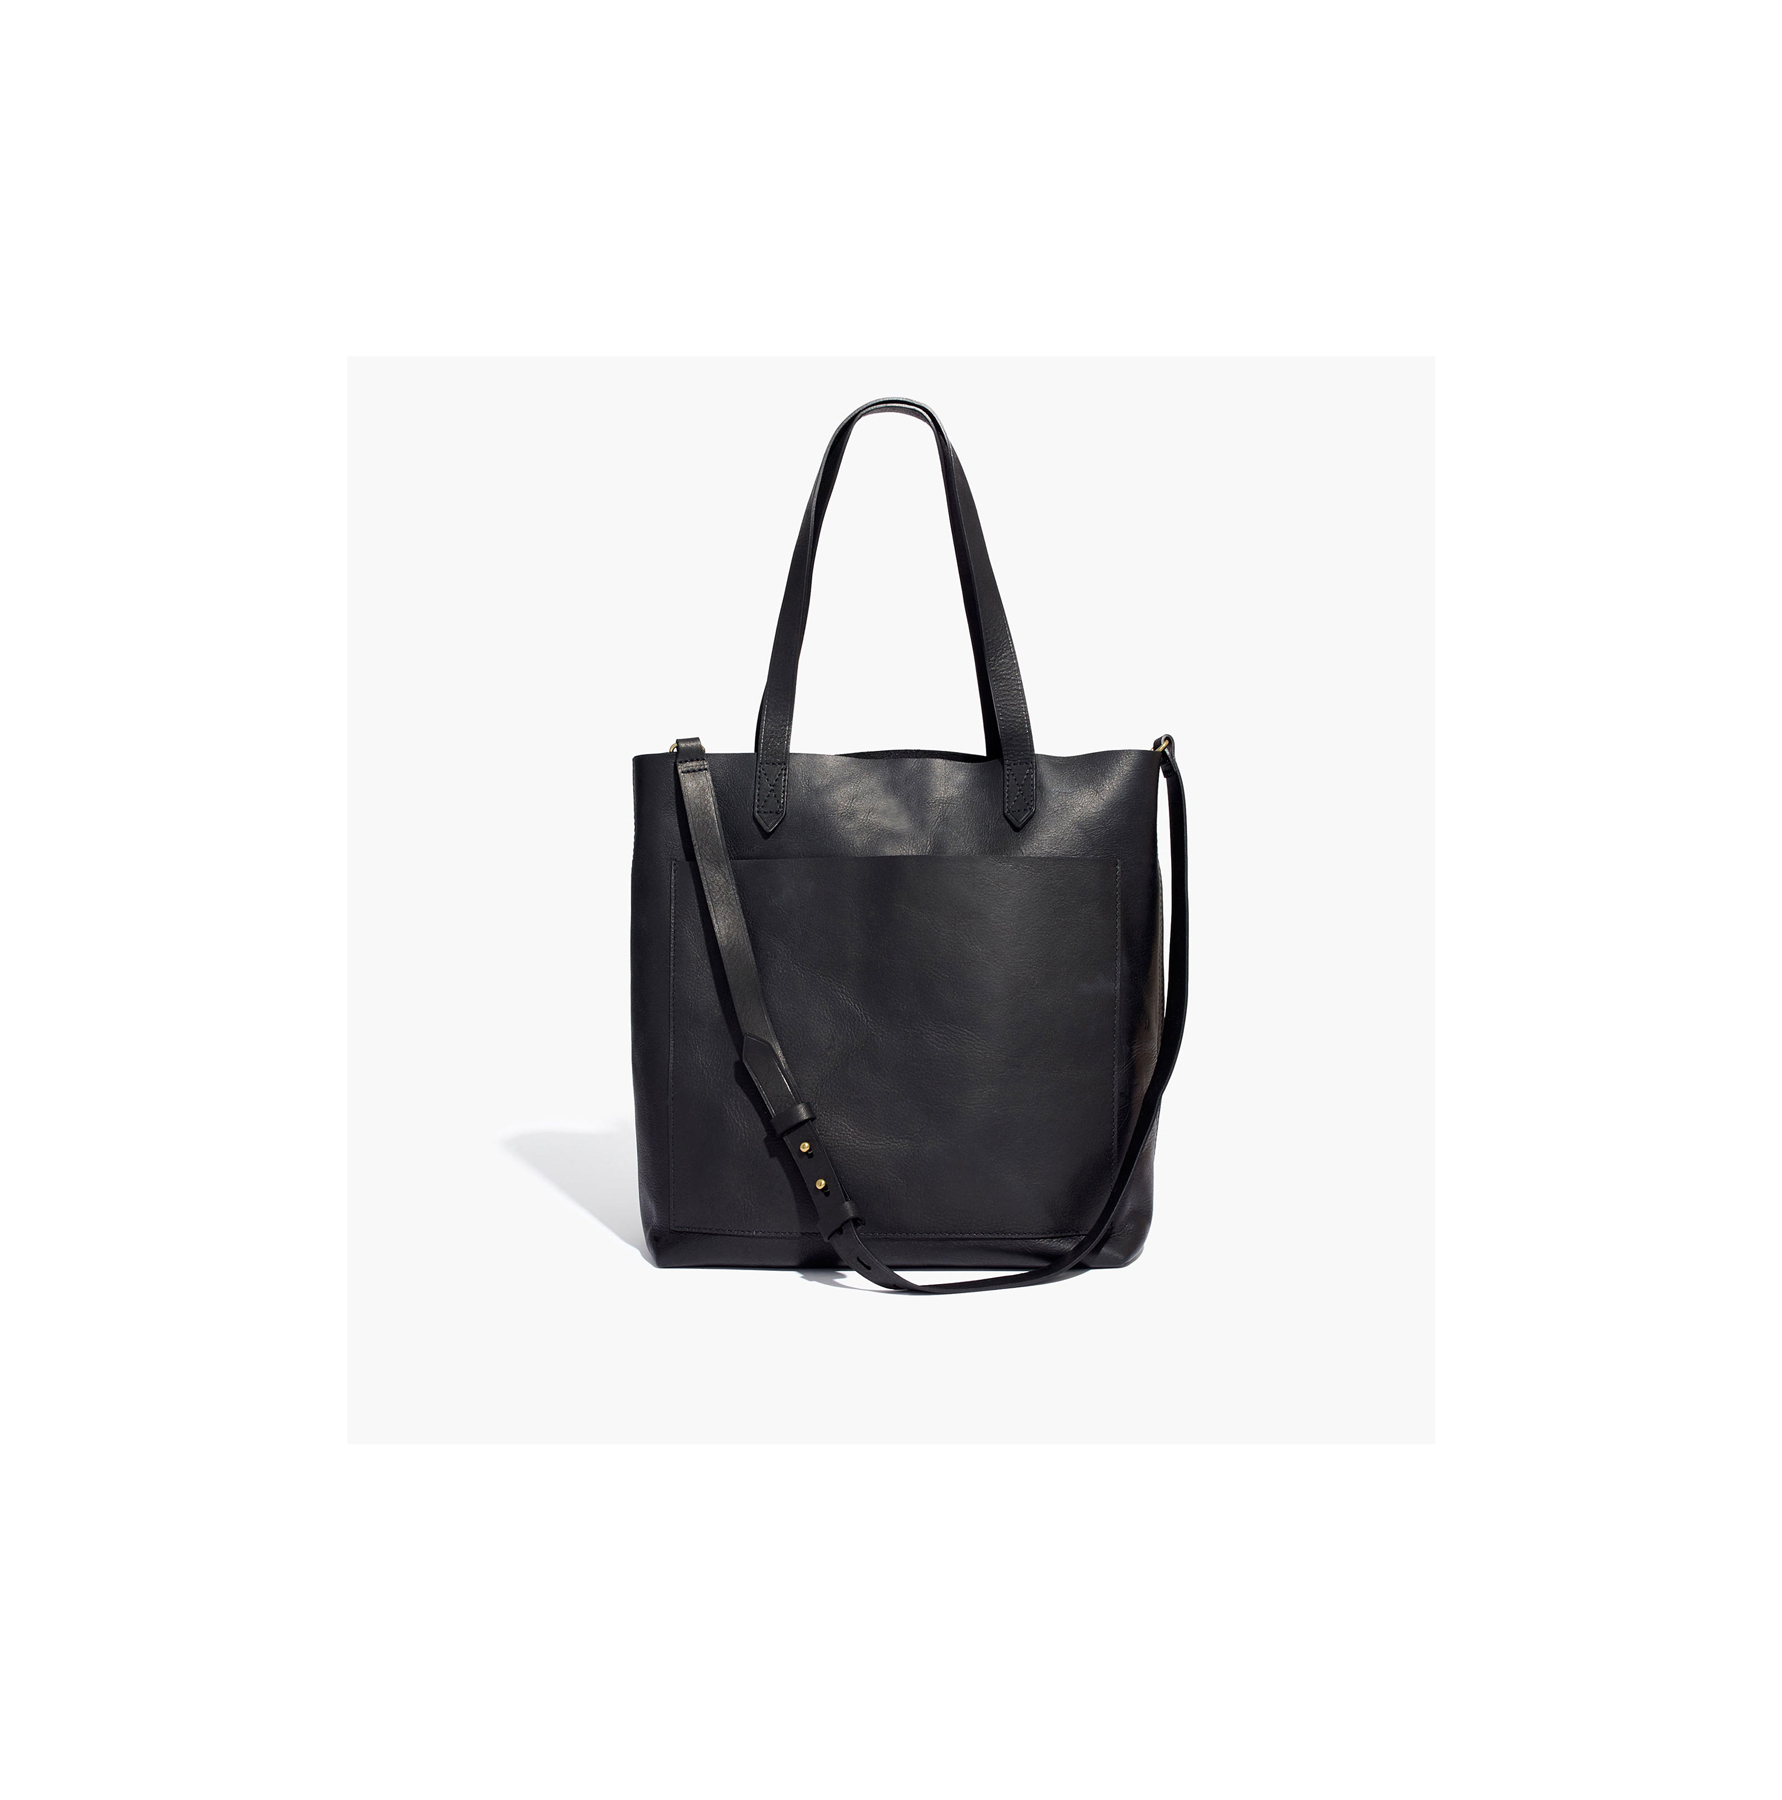 Best All-Purpose Tote: Madewell Black leather tote bag